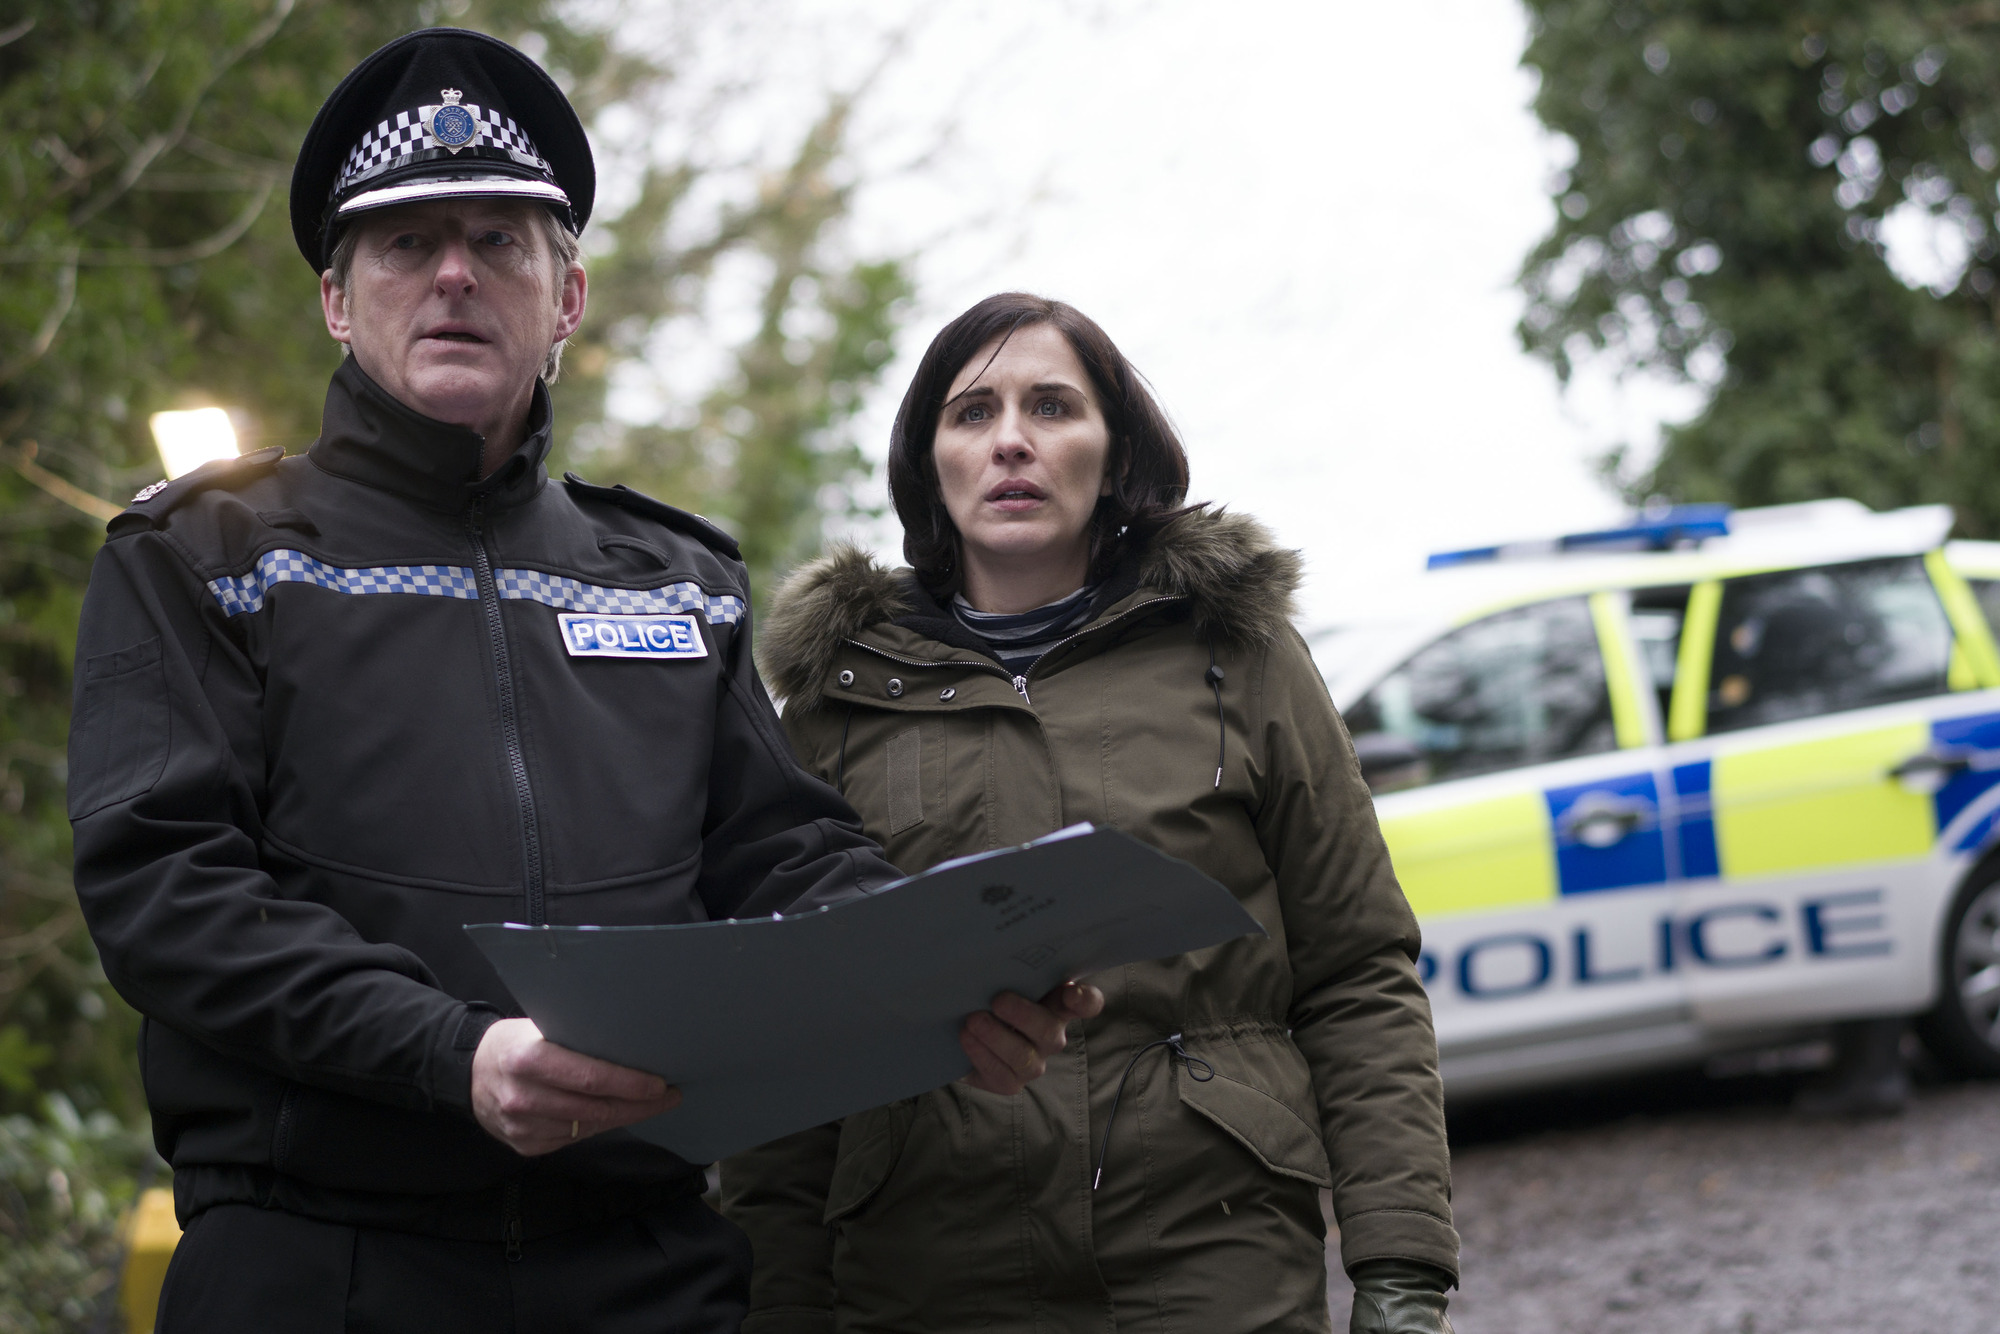 Line Of Duty has actually been renewed for TWO more series